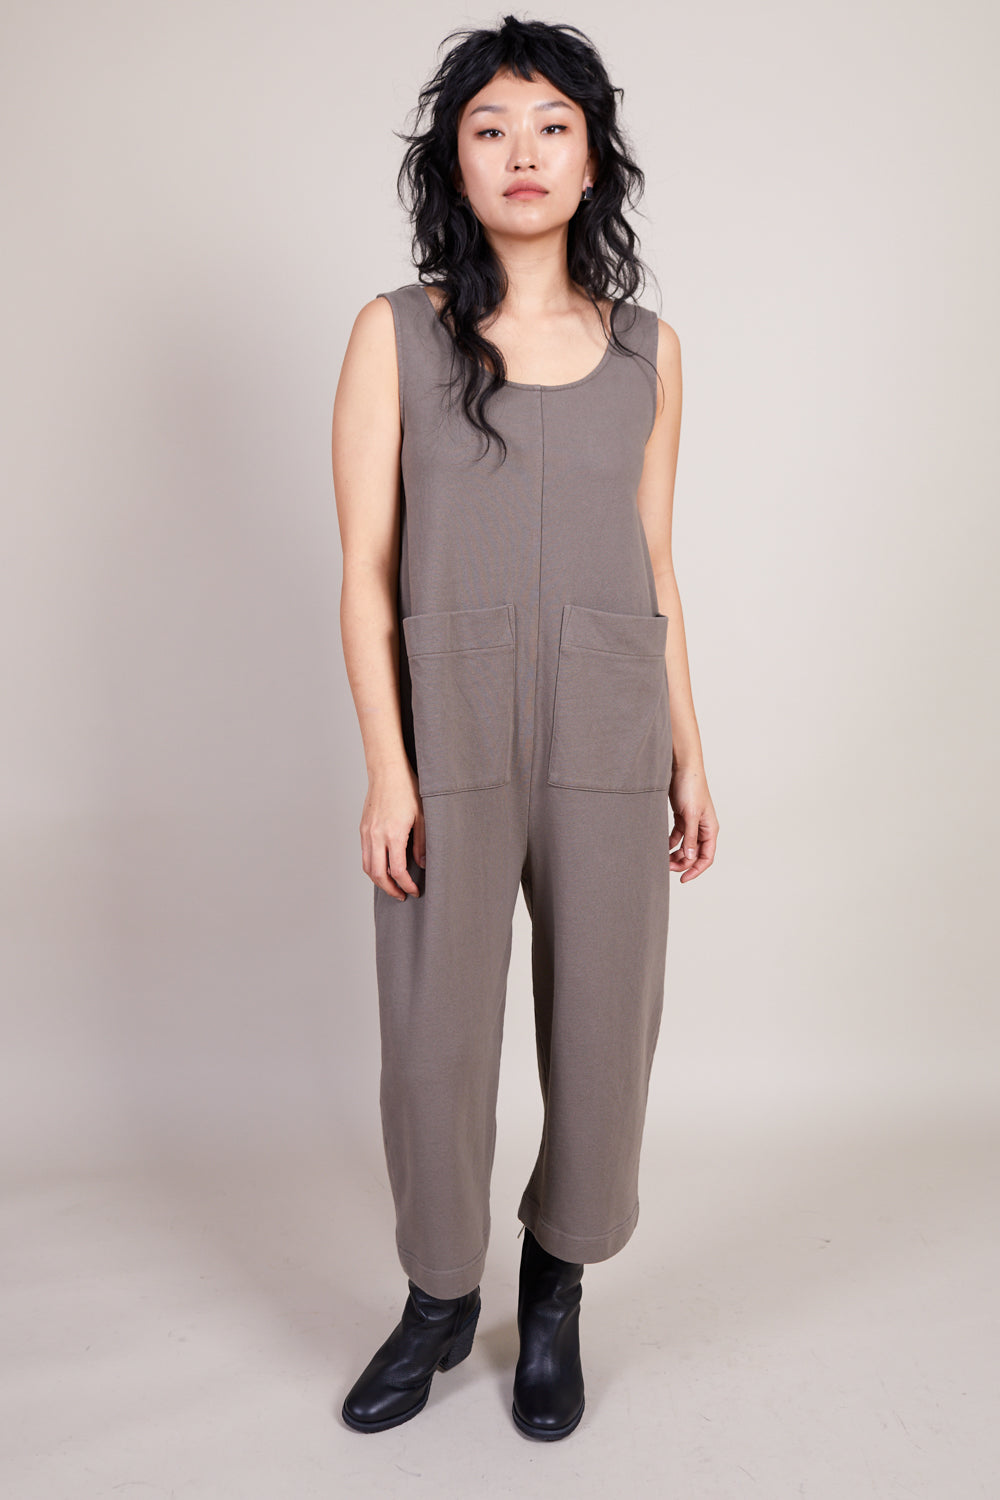 Ilana Kohn Wendy Jumpsuit in Peat - Vert & Vogue